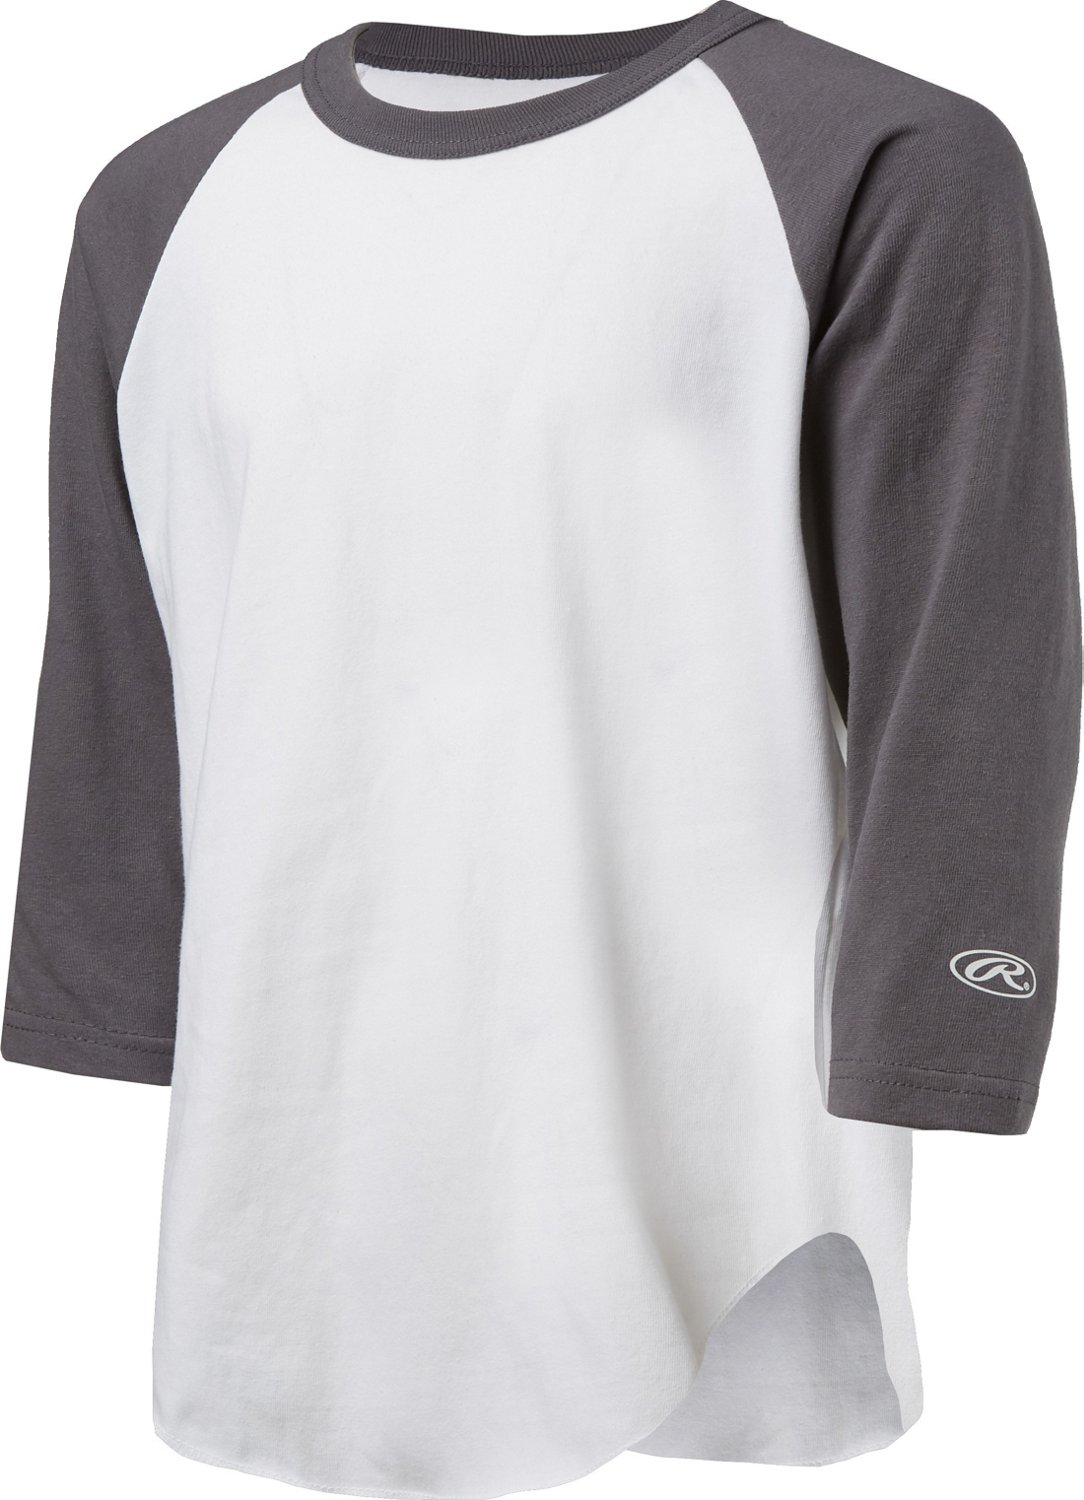 494c4624 Display product reviews for Rawlings Men's 3/4 Sleeve T-shirt